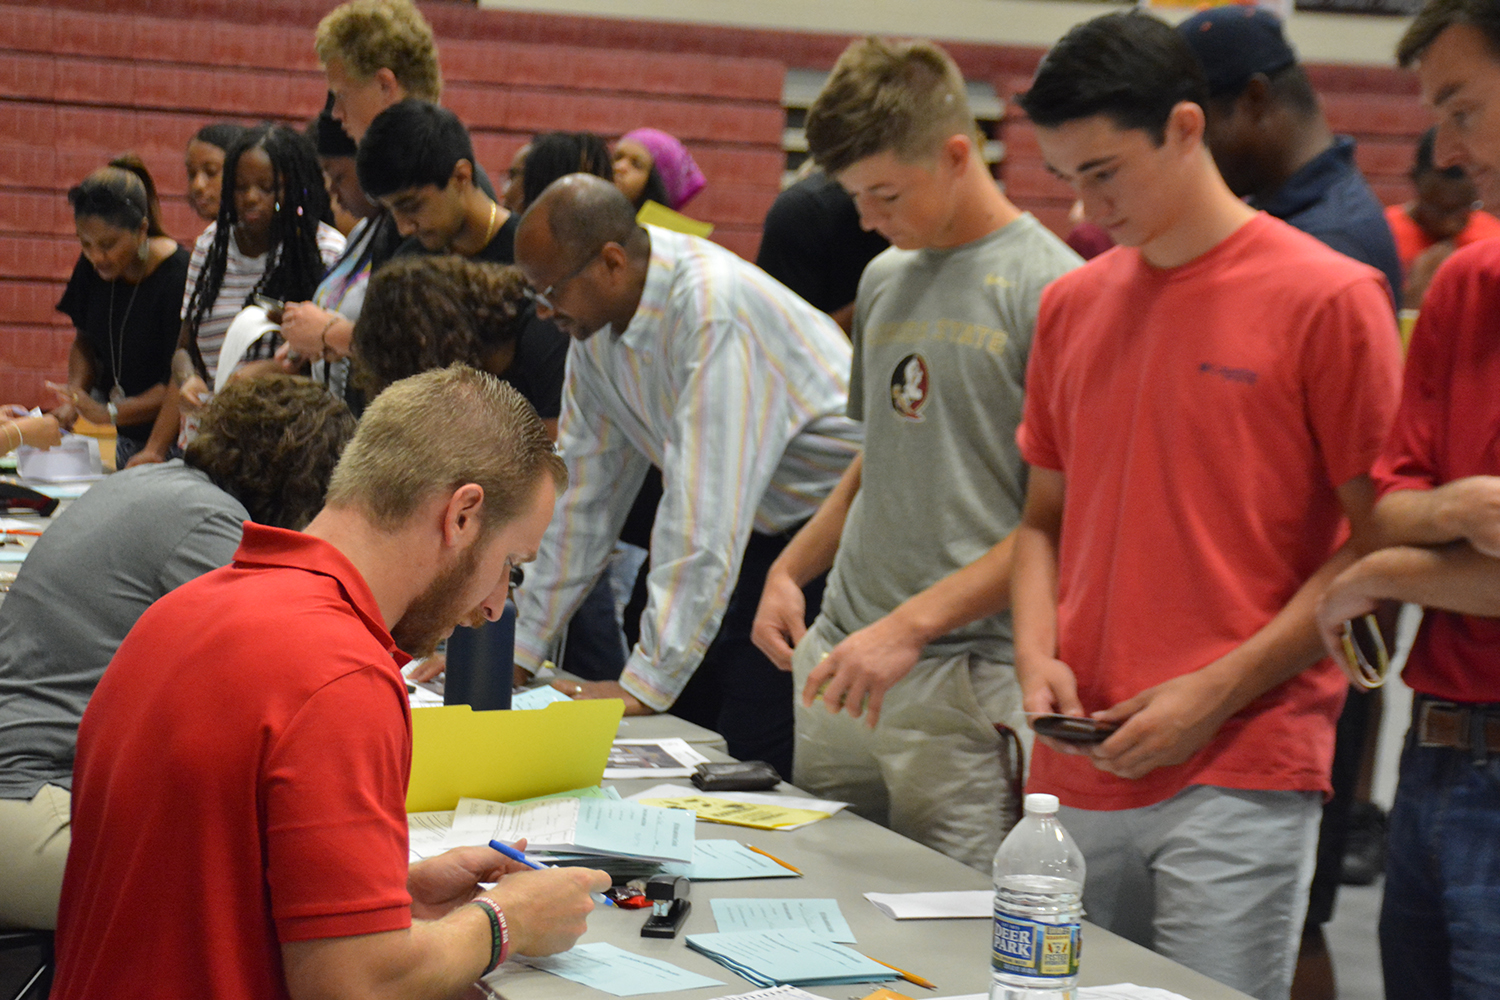 Seniors start their final year by picking up their schedules on Senator Day.